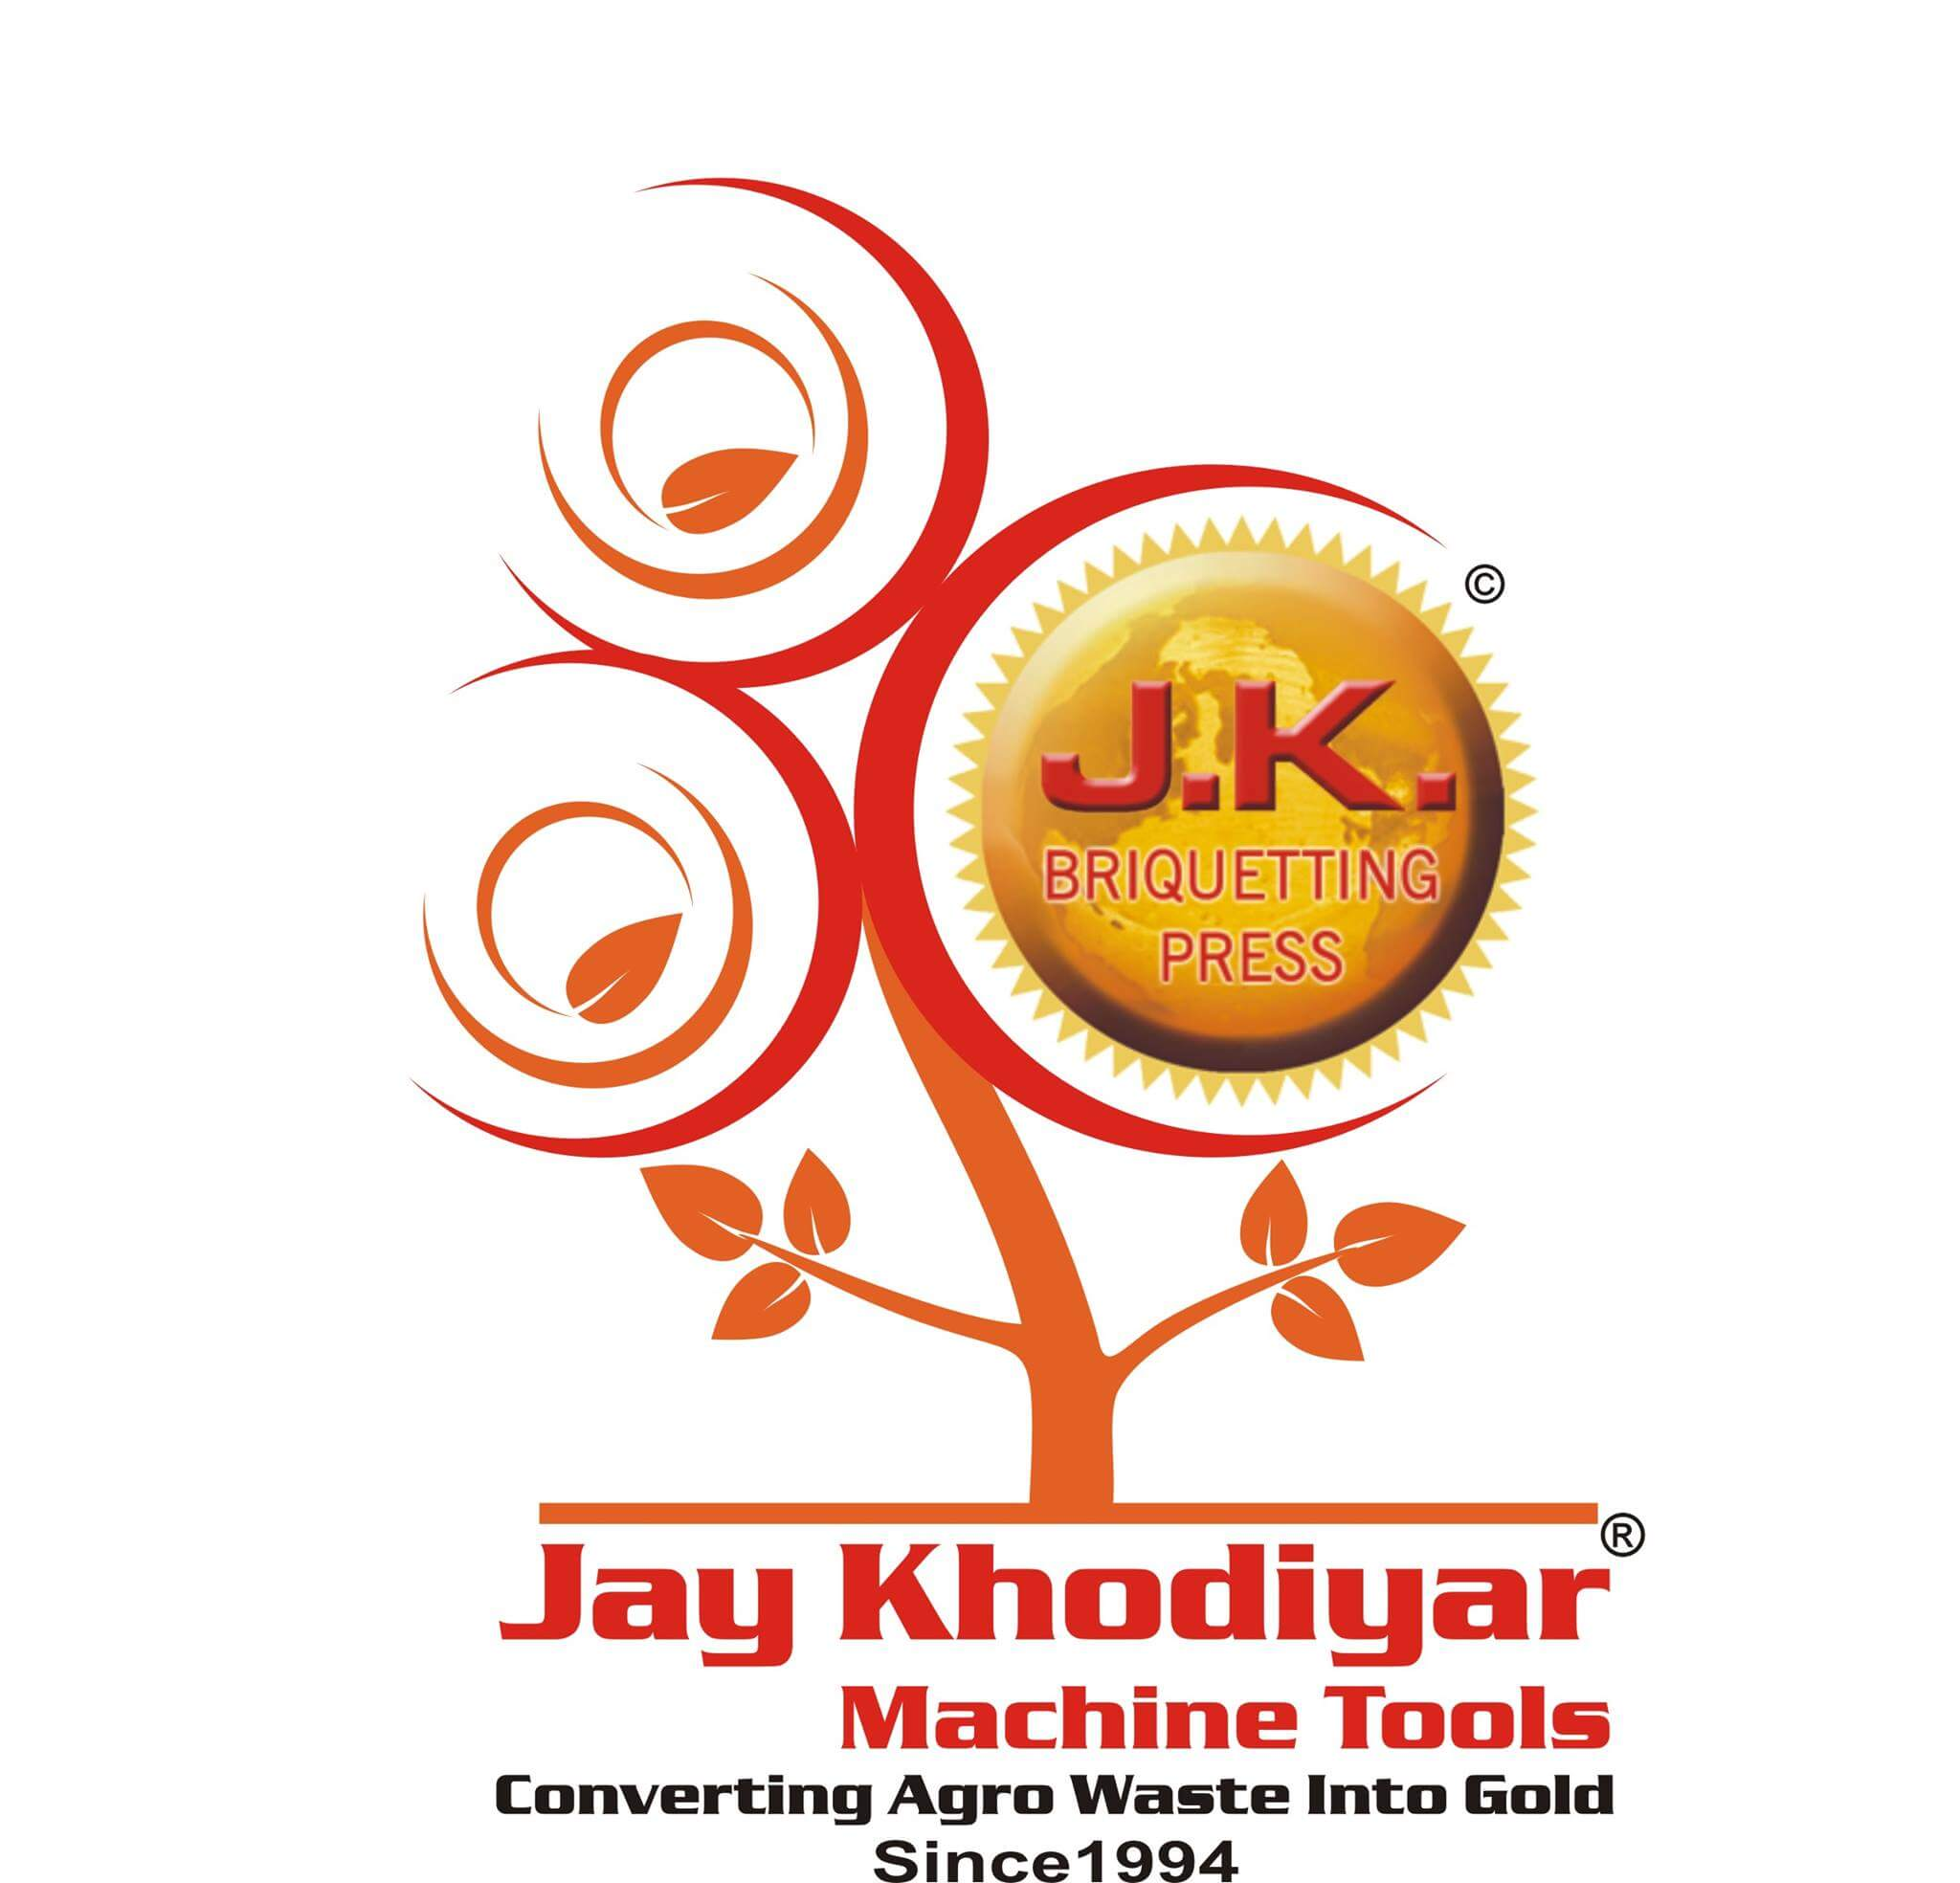 Jay Khodiyar Machine Tools